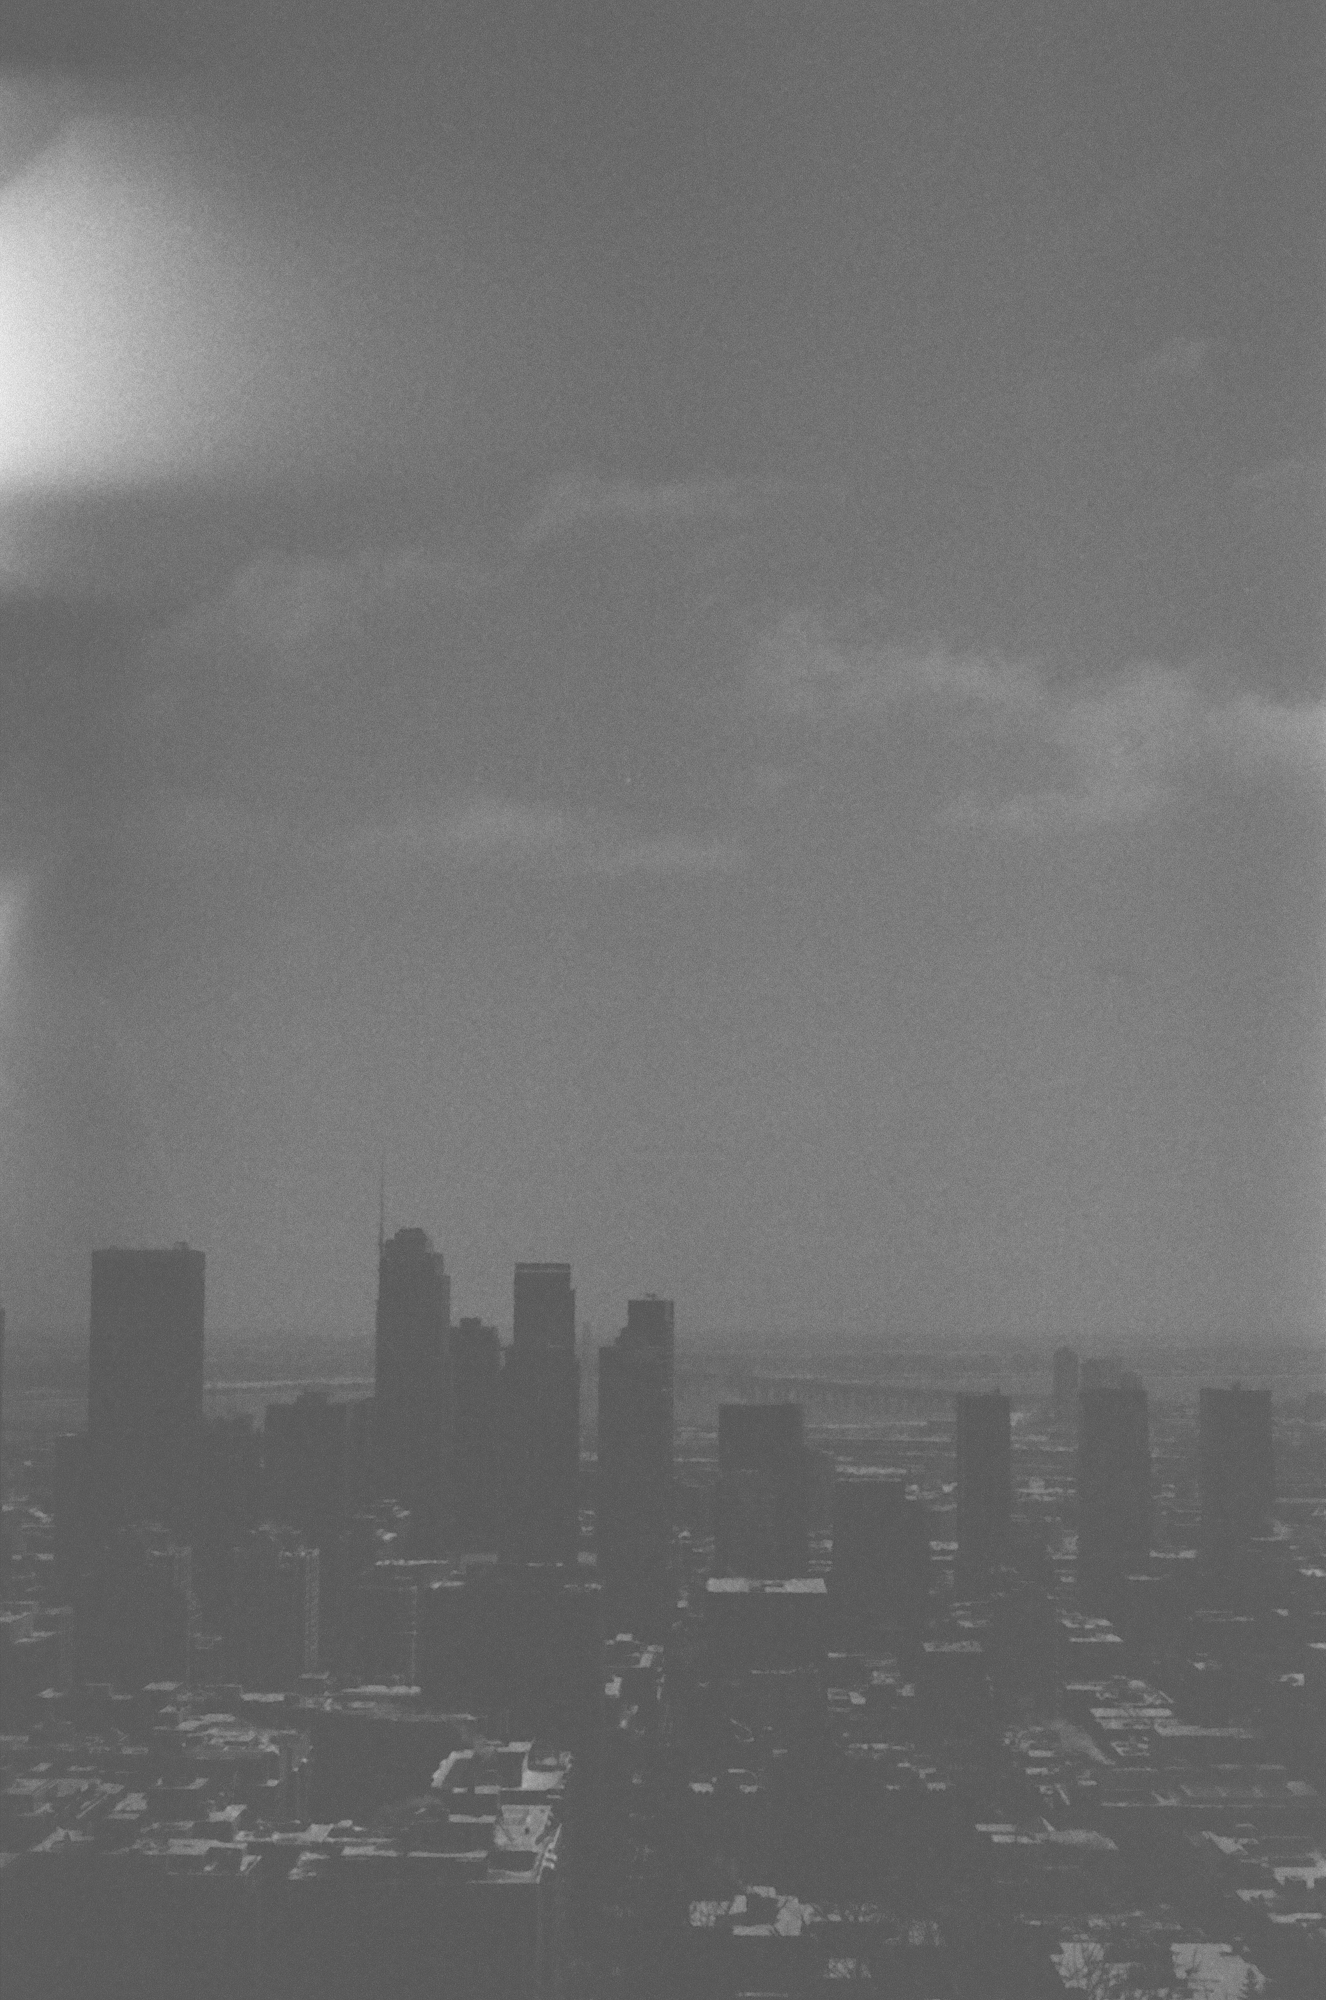 MONTREAL SKYLINE BLACK AND WHIT FILM PHOTOGRAPH